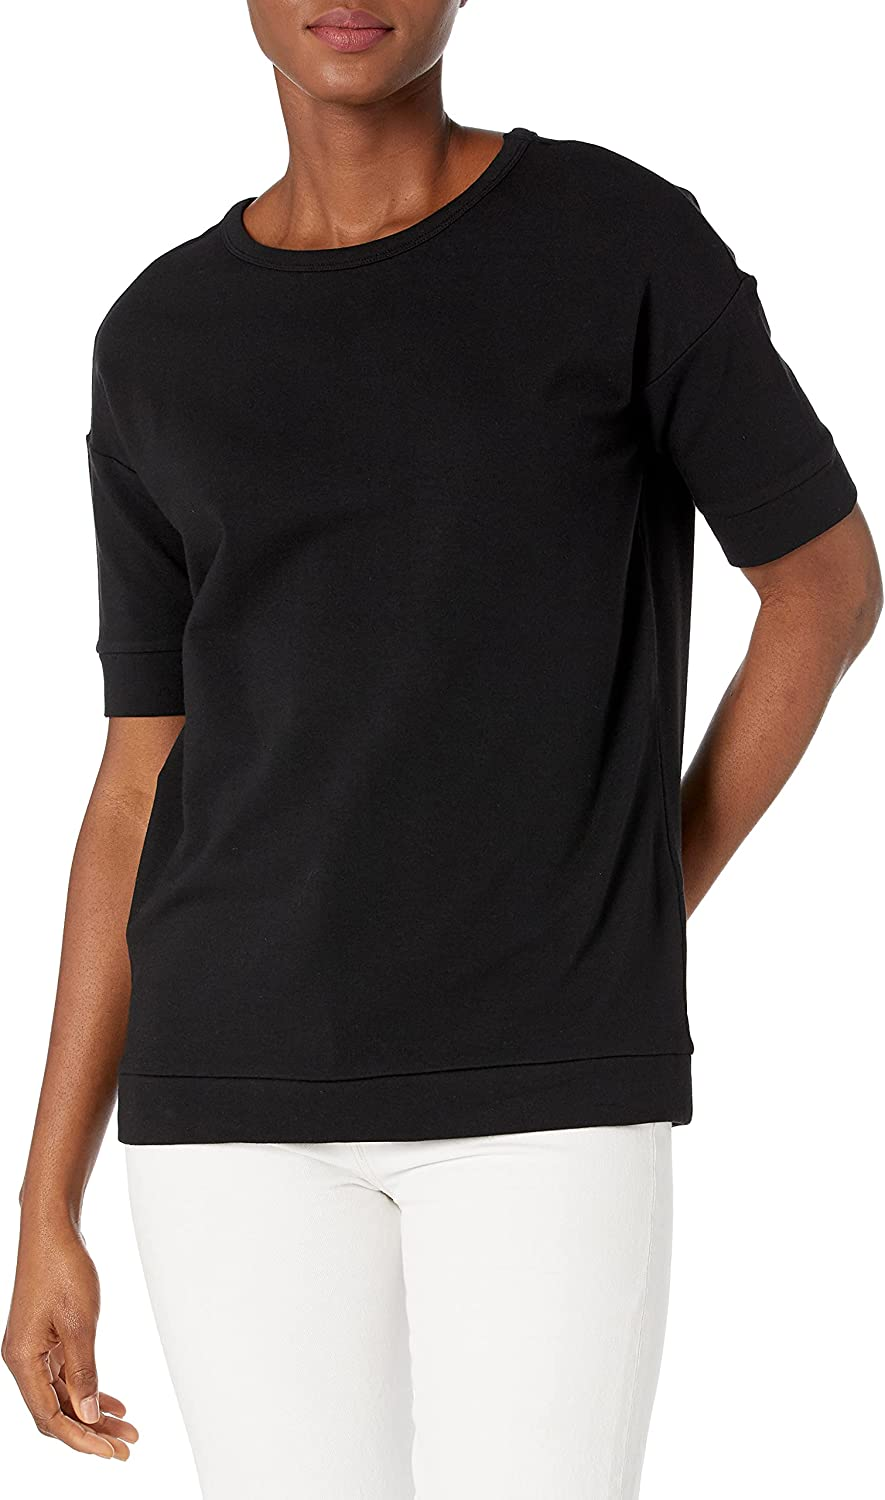 Daily Ritual Women's Terry Cotton and Modal Oversized-Fit Slouchy Short-Sleeve Sweatshirt